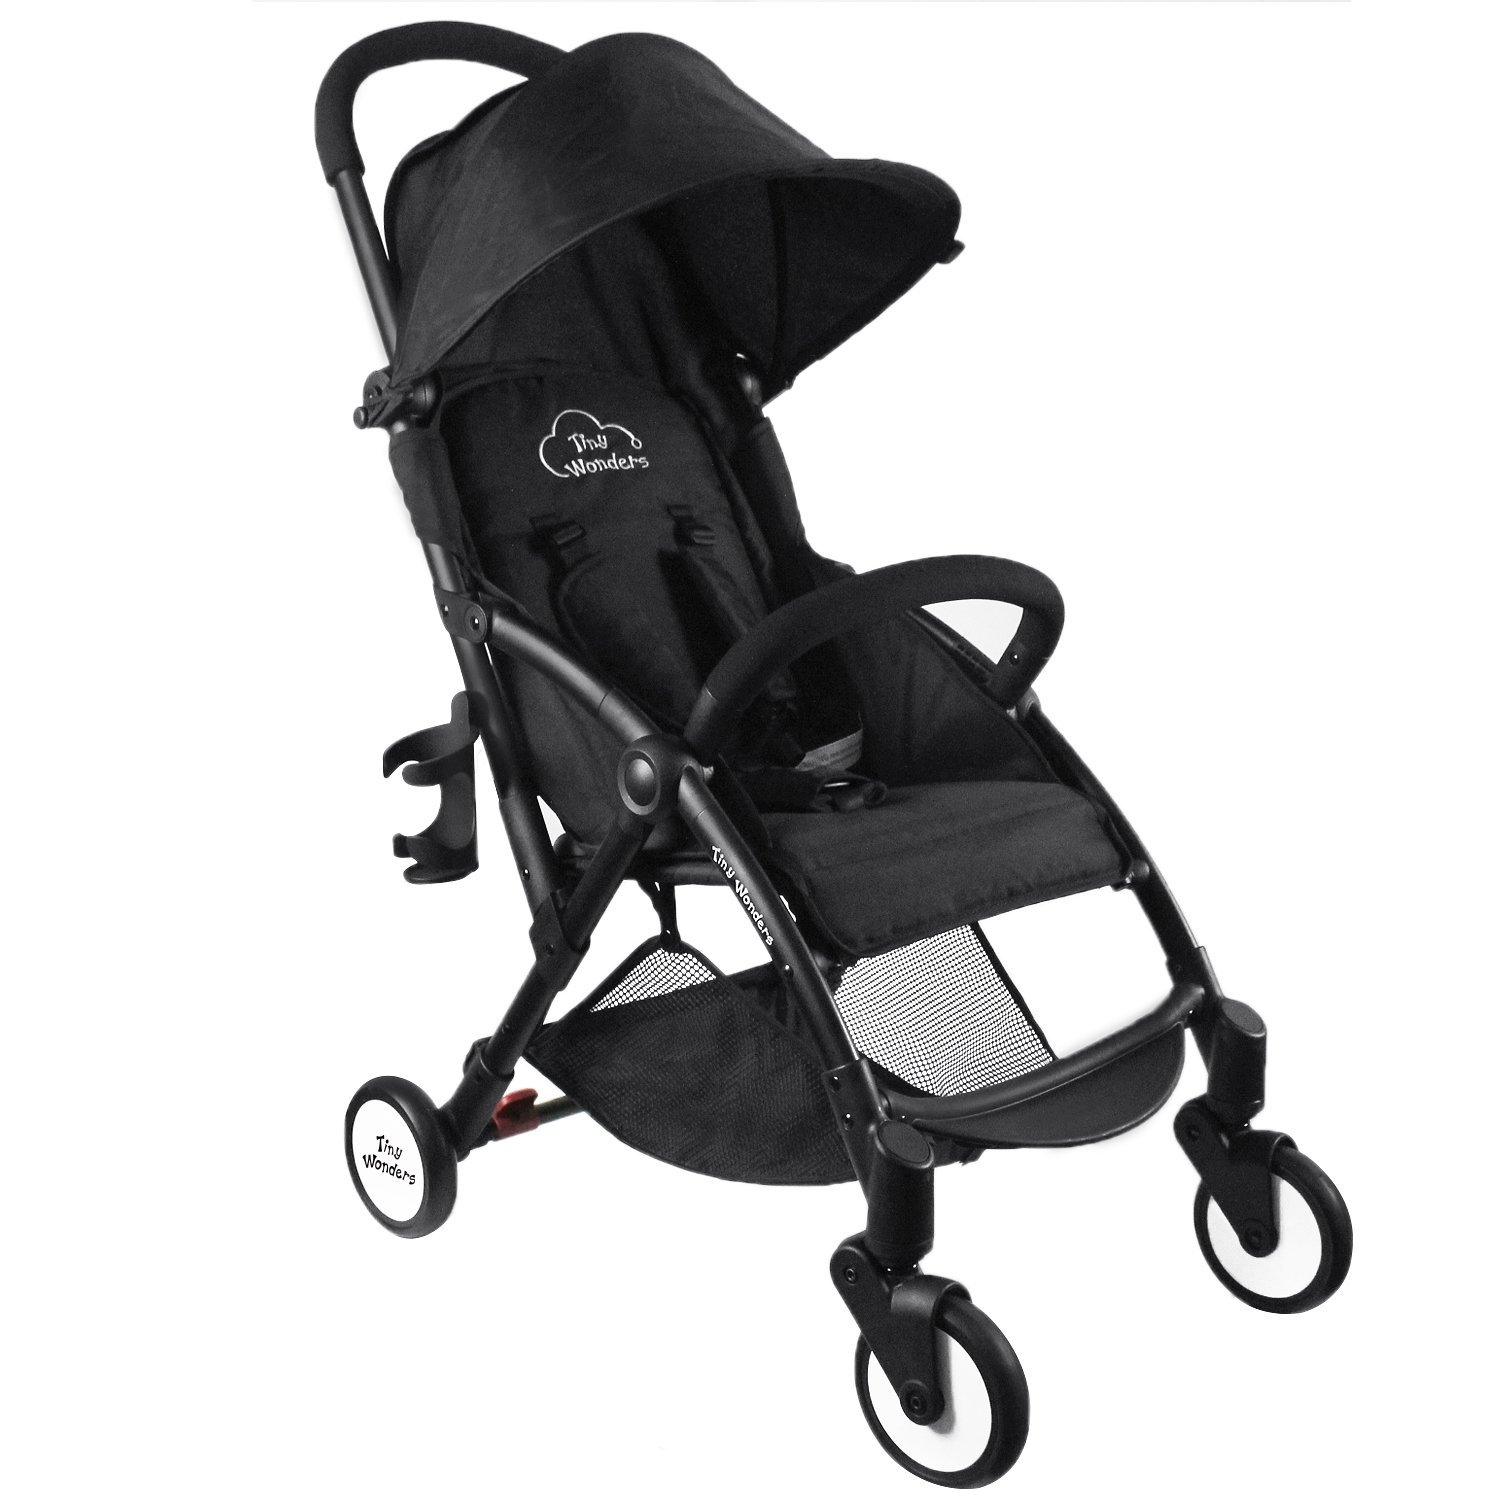 Black Deluxe Dual-Brake Single Baby Stroller, Portable Light Weight Travel Pram, Large Water Resistant Umbrella Canopy For Infant Toddler, Boys, Girls Unisex 3 Month, 1, 2 Year Old and UP